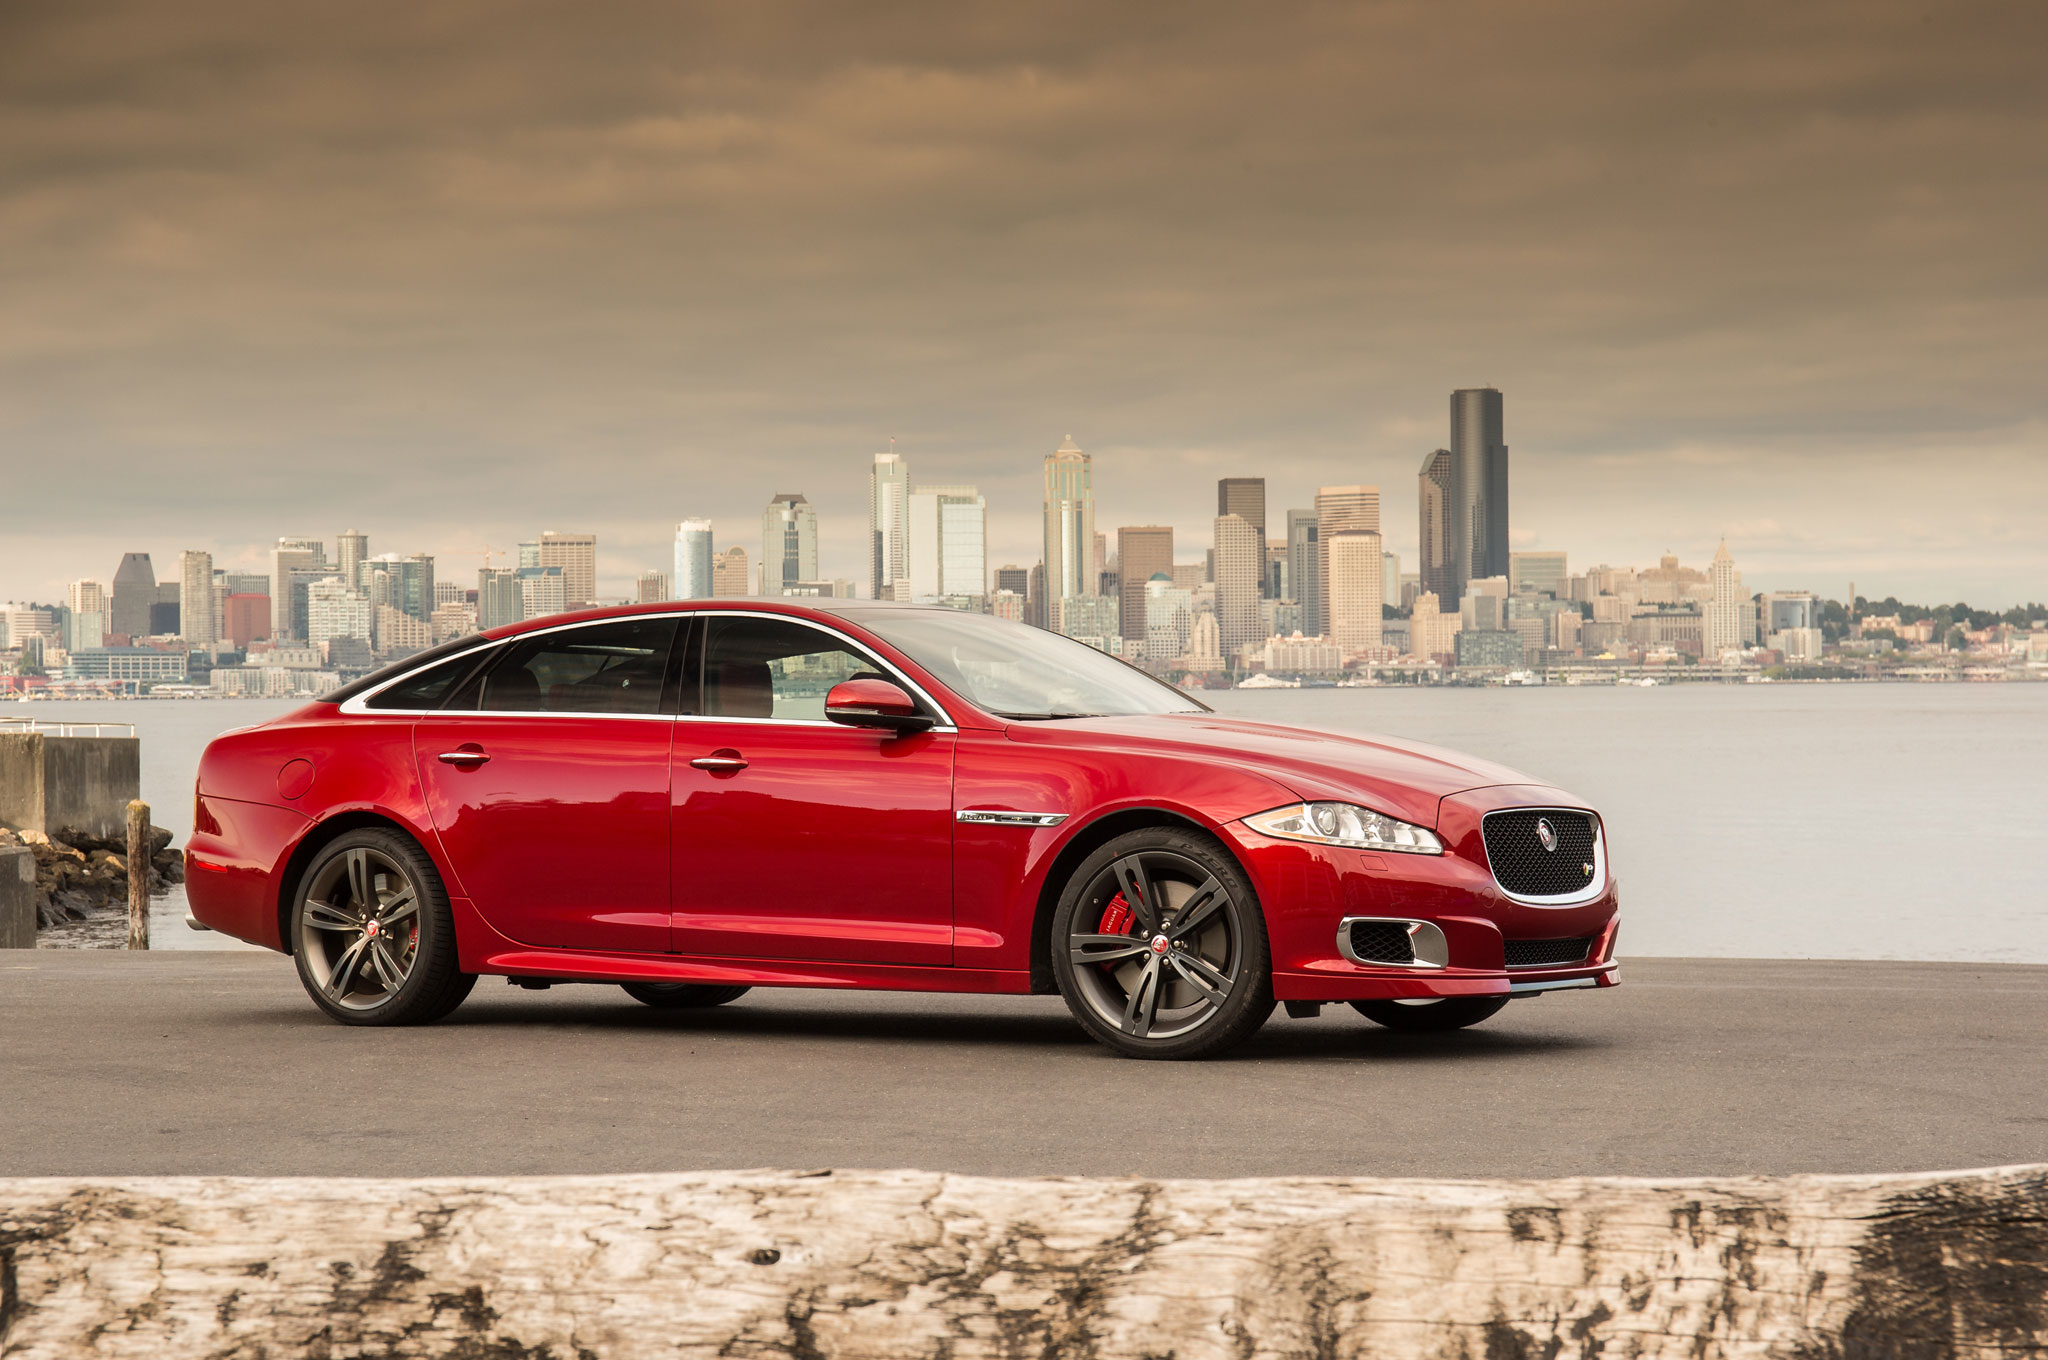 sdn xj vehicles jaguar portfolio hd autoform xjl awd